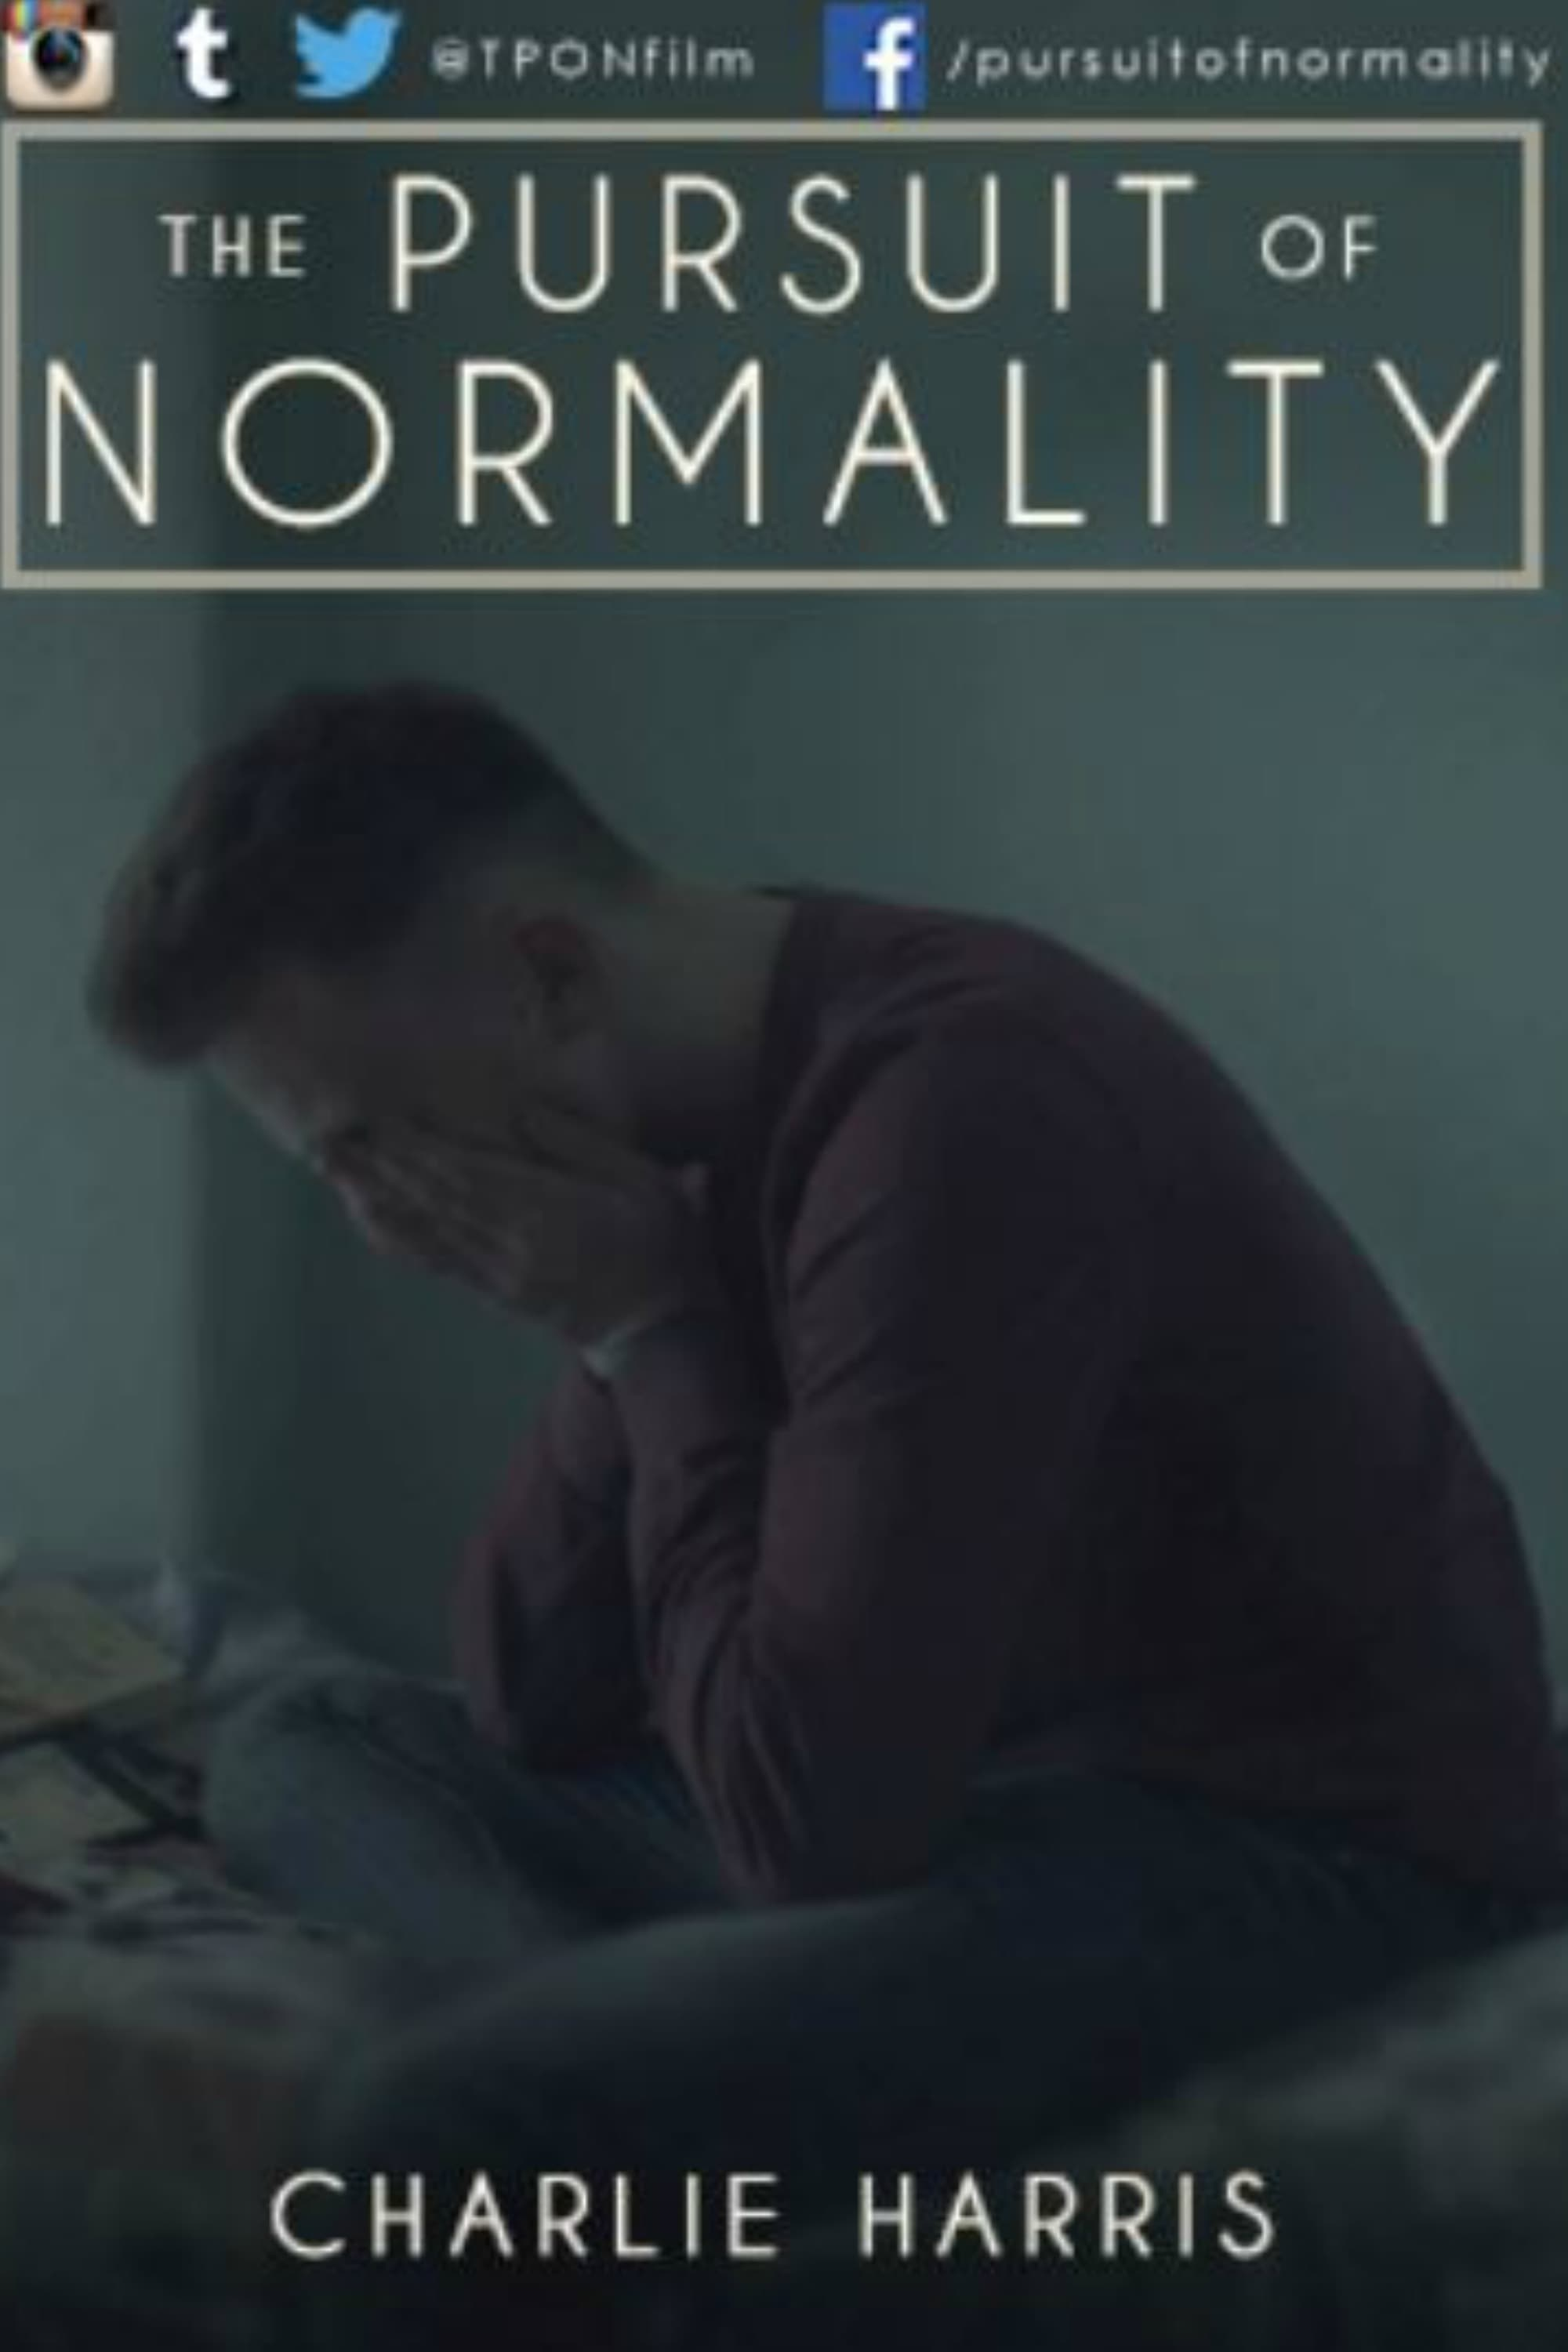 The pursuit of normality (1970)